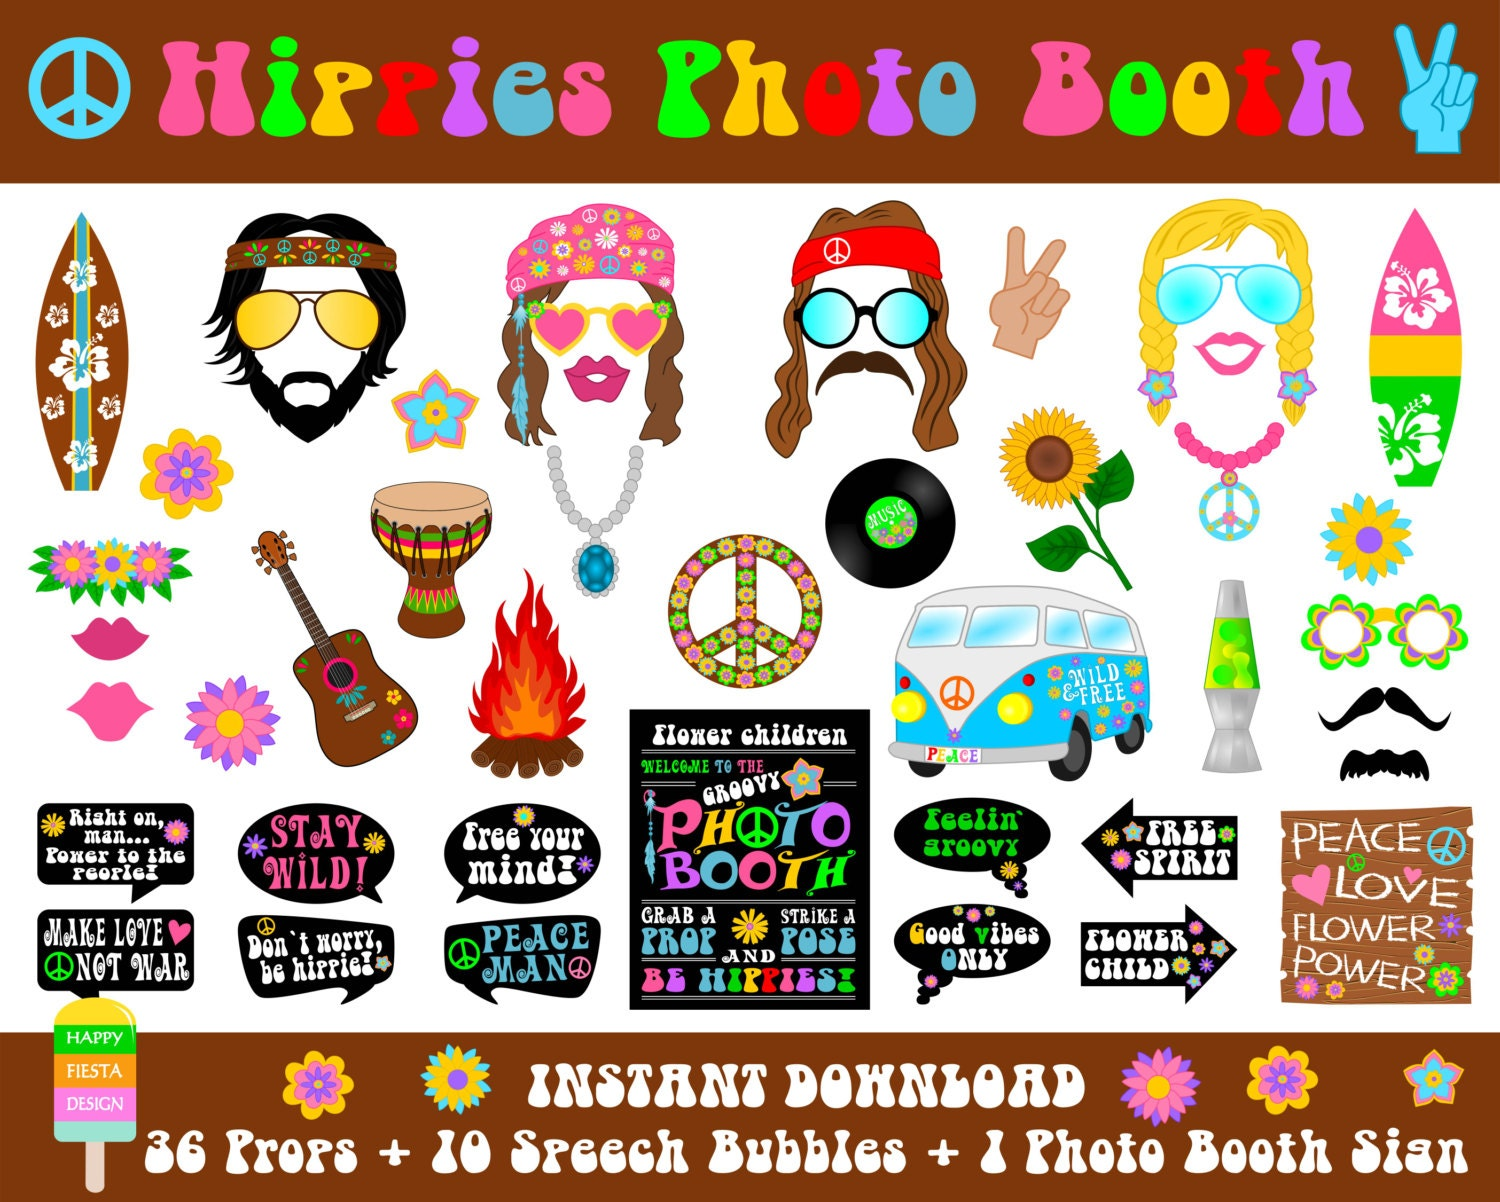 PRINTABLE Hippies Photo Booth PropsPhoto Booth Sign-Hippie